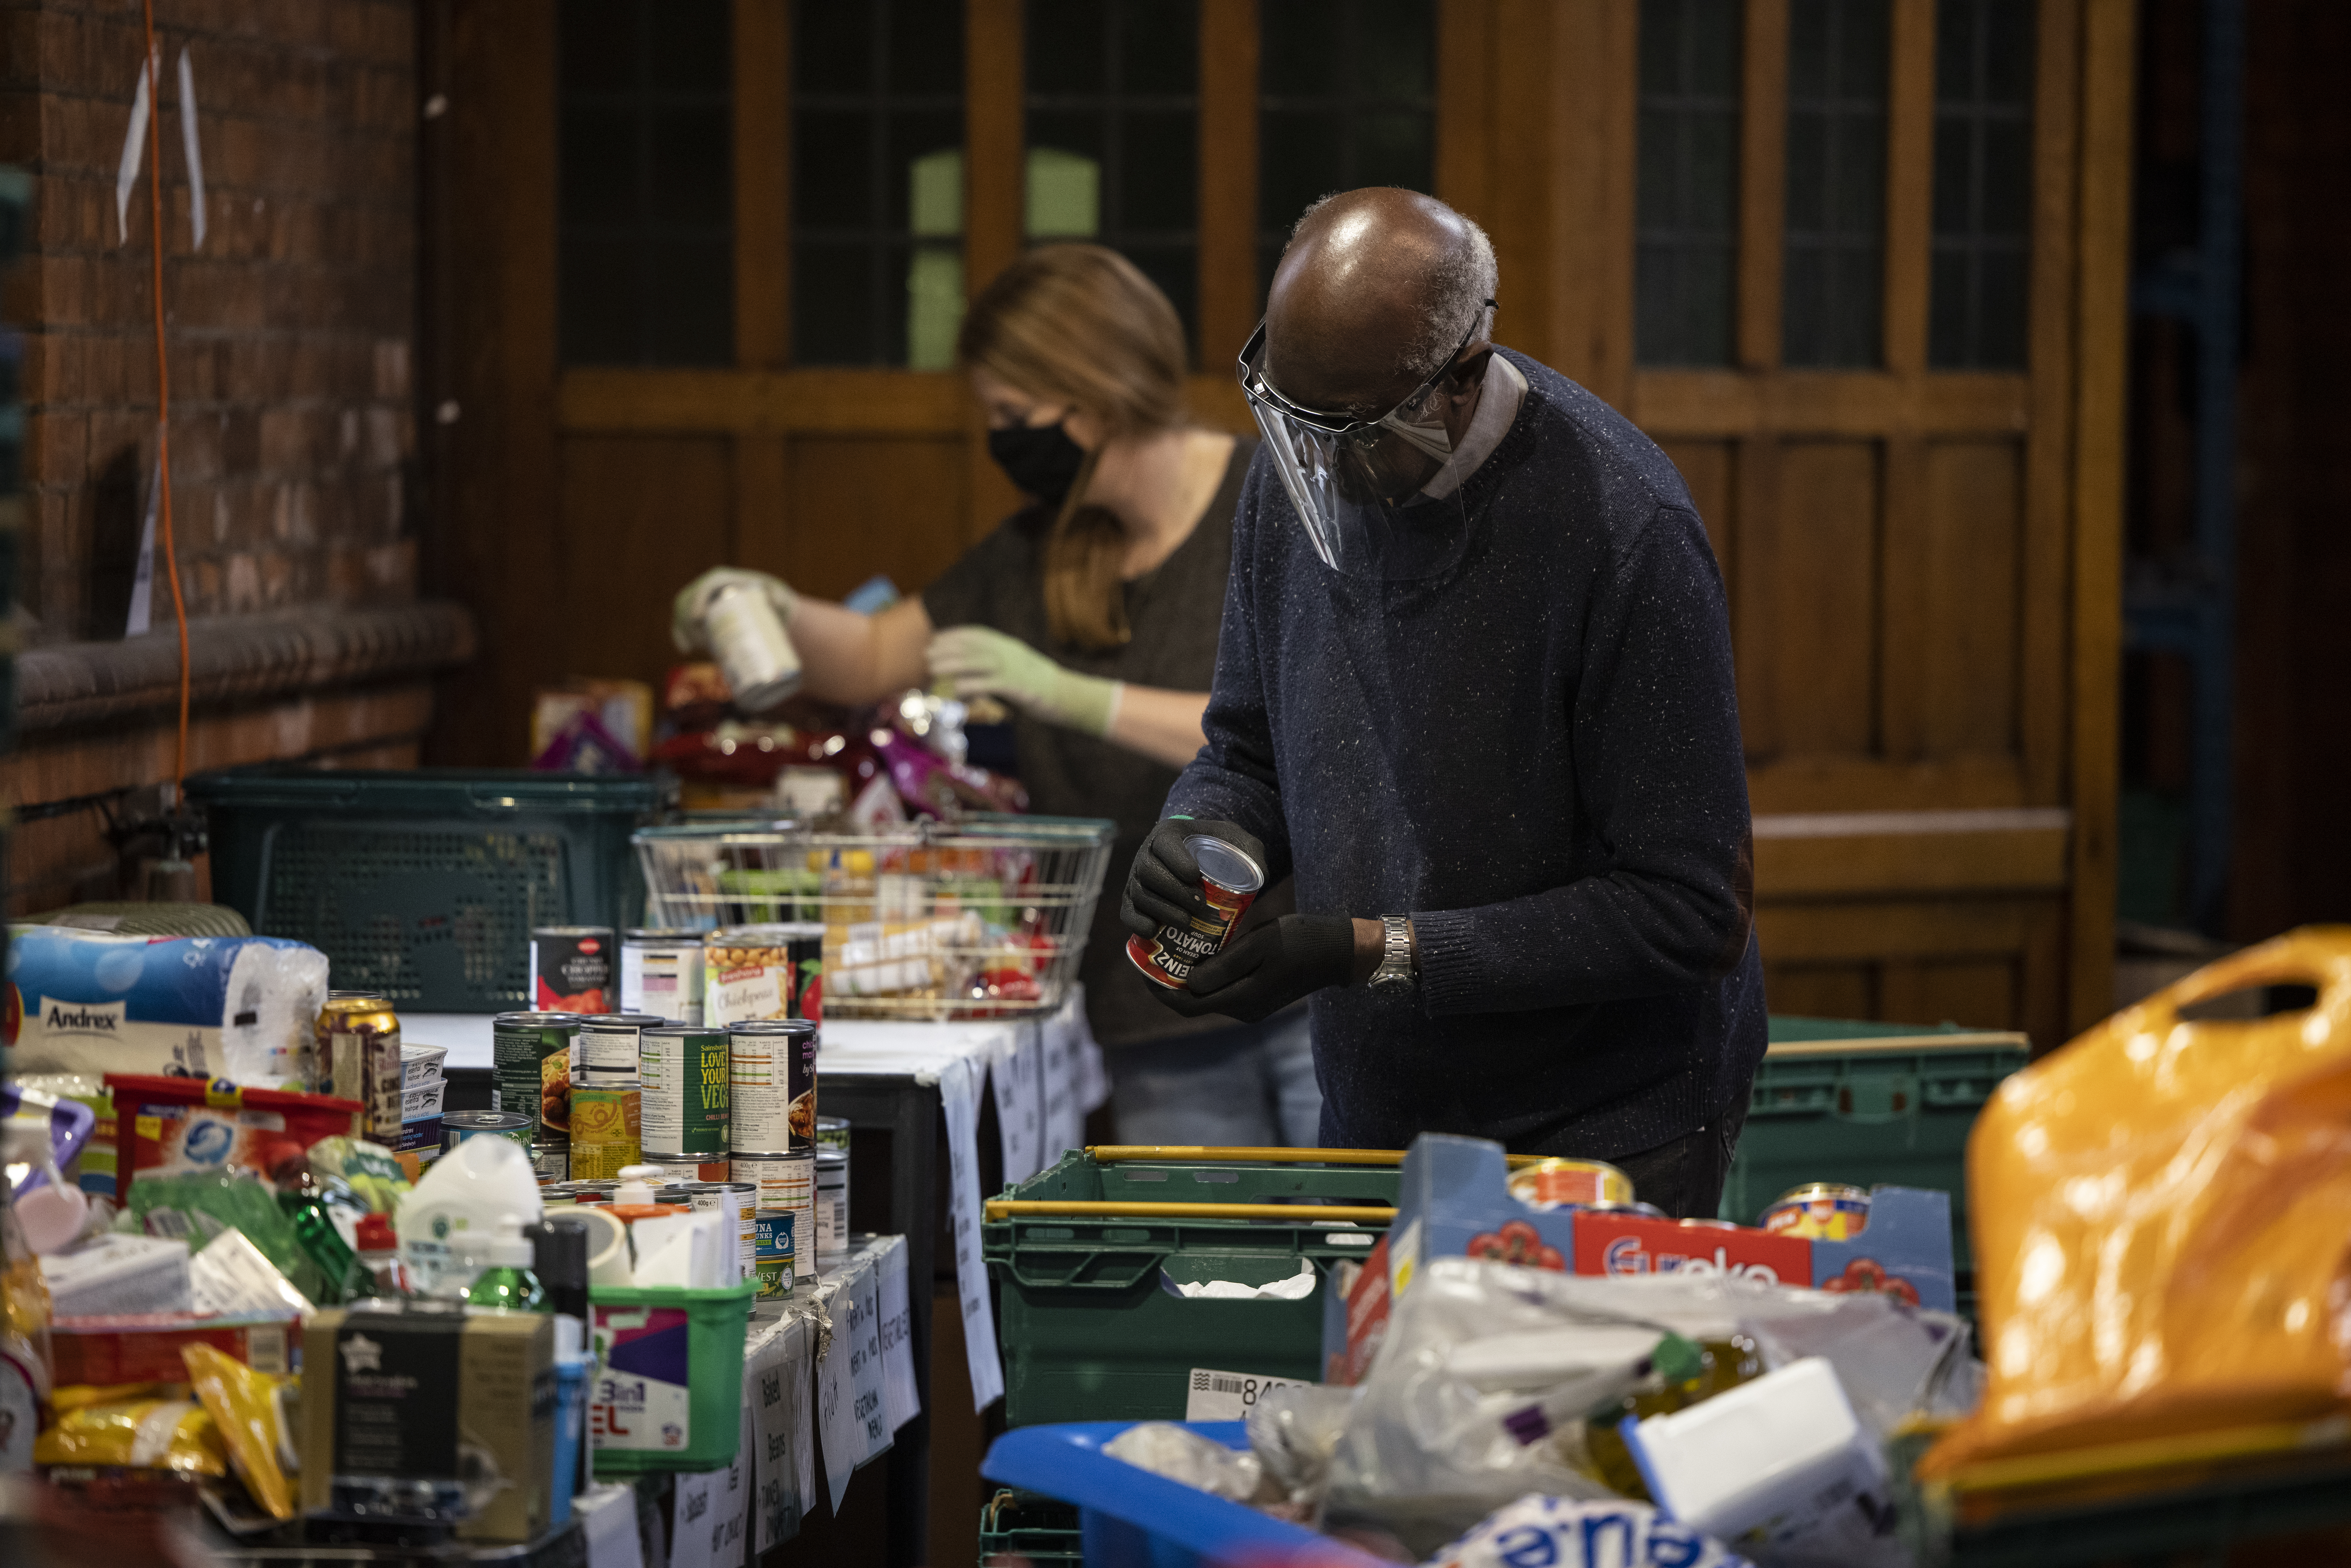 Trussell Trust volunteers stand over crates of food, packing food parcels for London food banks